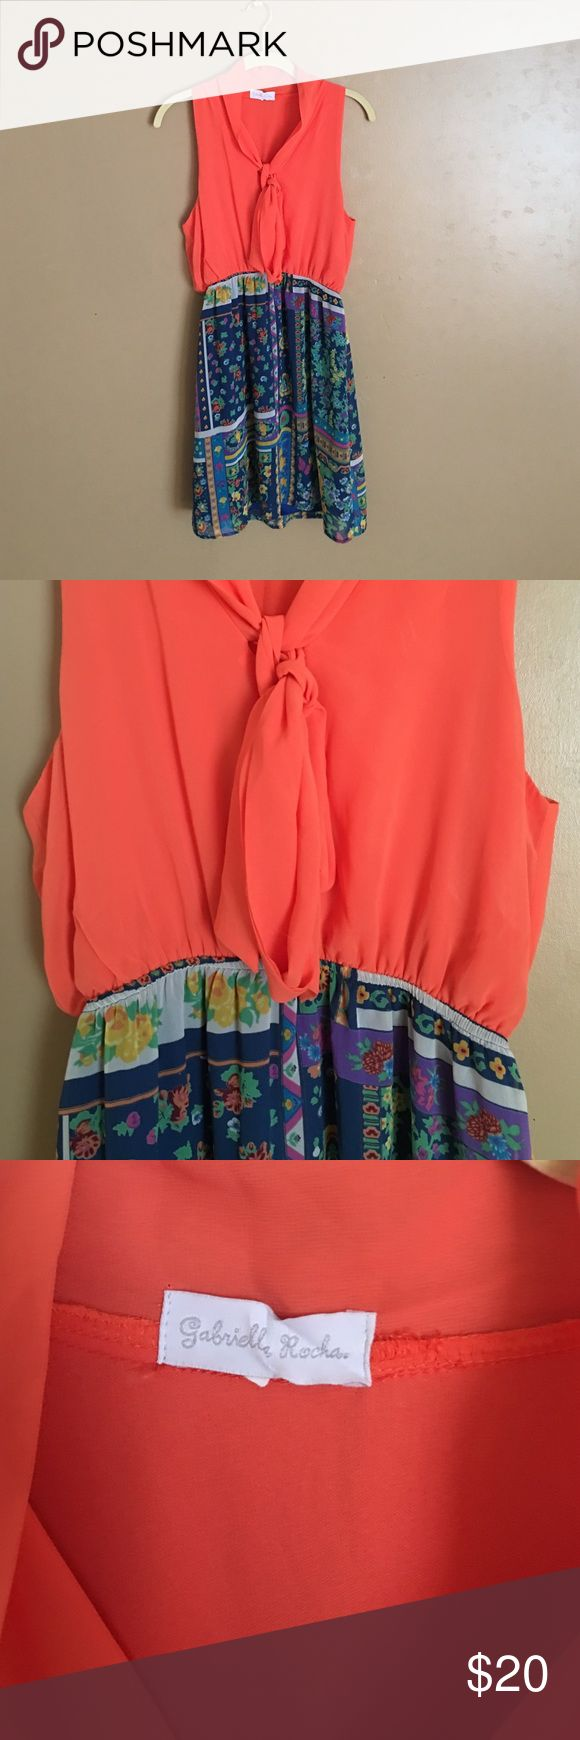 Gabriella Rocha cute dress Cute as can be! Great condition. No size tag but it's a medium (6-8) top is an orange/coral color. Gabriella rocha Dresses